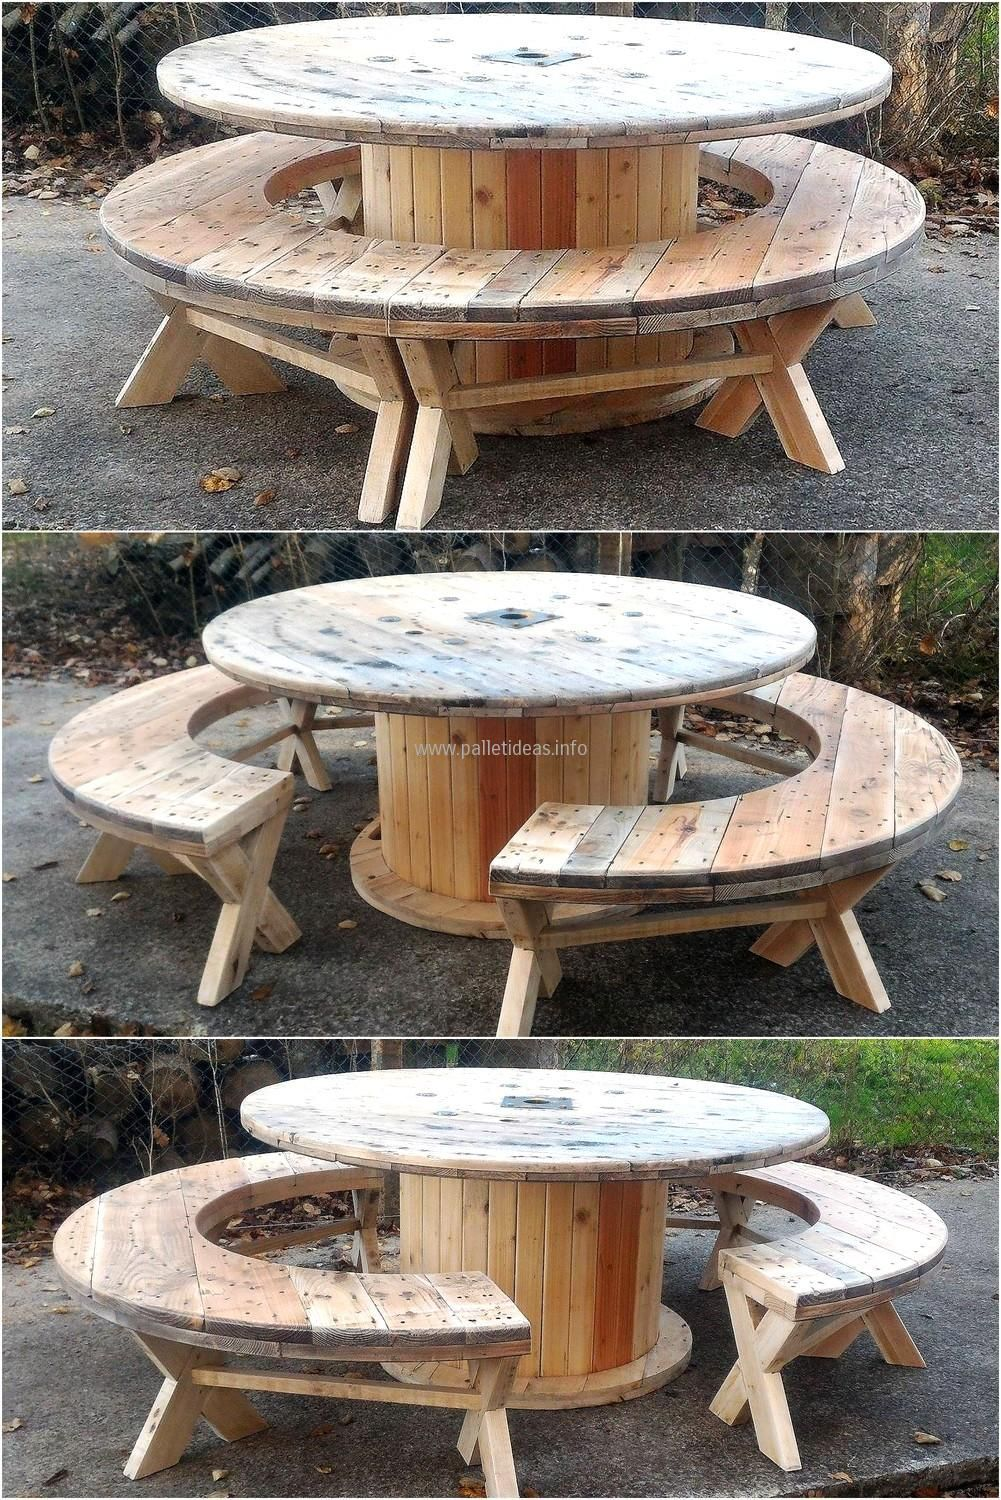 Recycled-pallet-cable-reel-patio-furniture Backyard